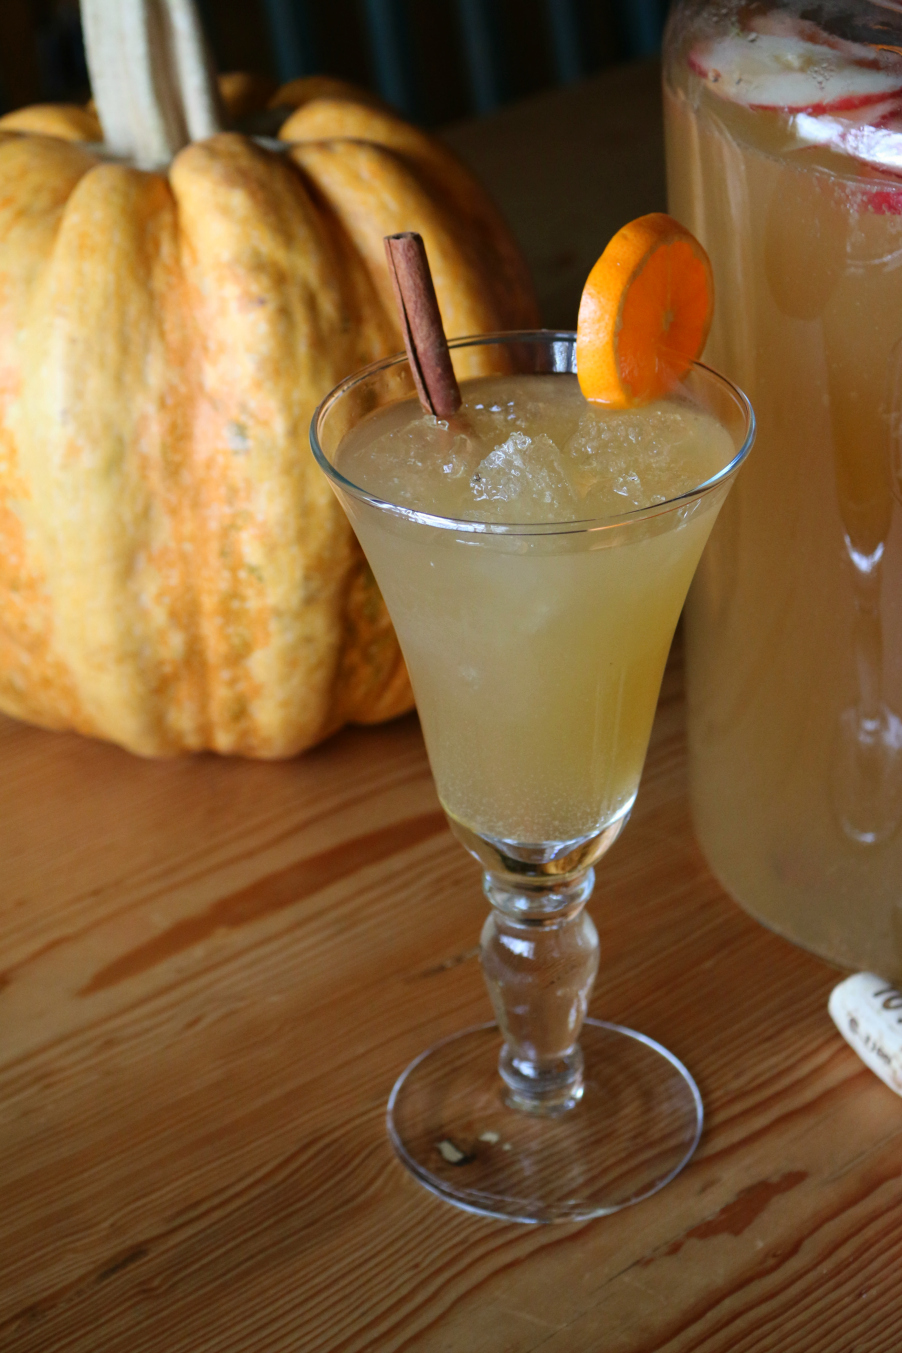 An Easy and Simple Holiday Fresh Citrusy White Sangria Recipe CeceliasGoodStuff.com Good Food for Good People